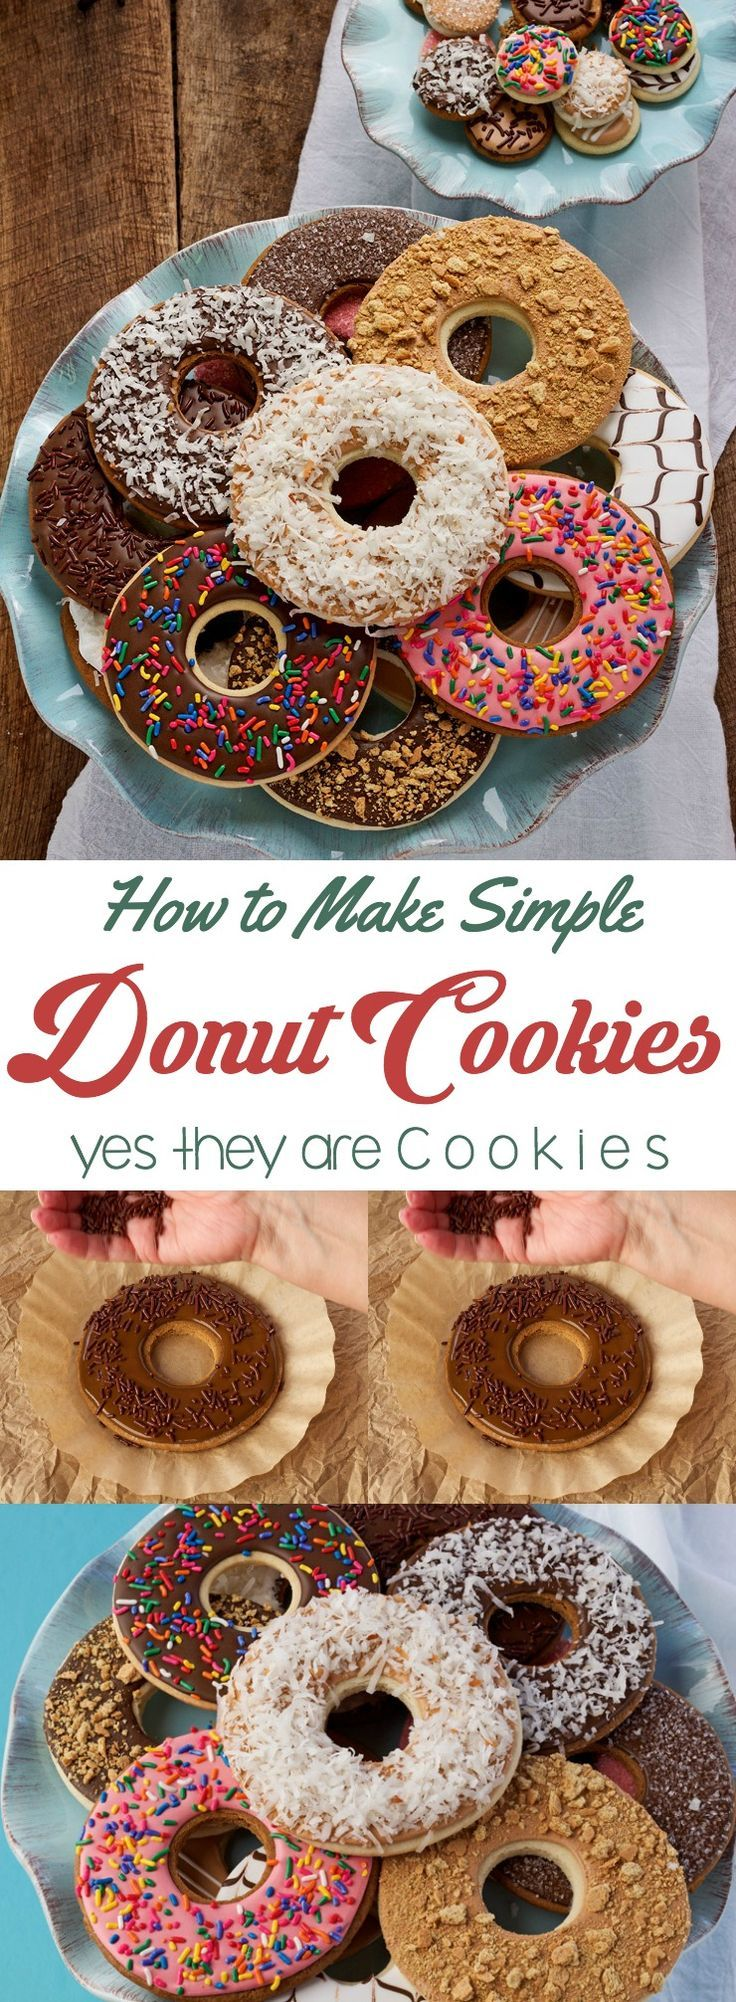 How to Make Simple Donut Cookies that Look Like they are Real Donuts | The Bearfoot Baker